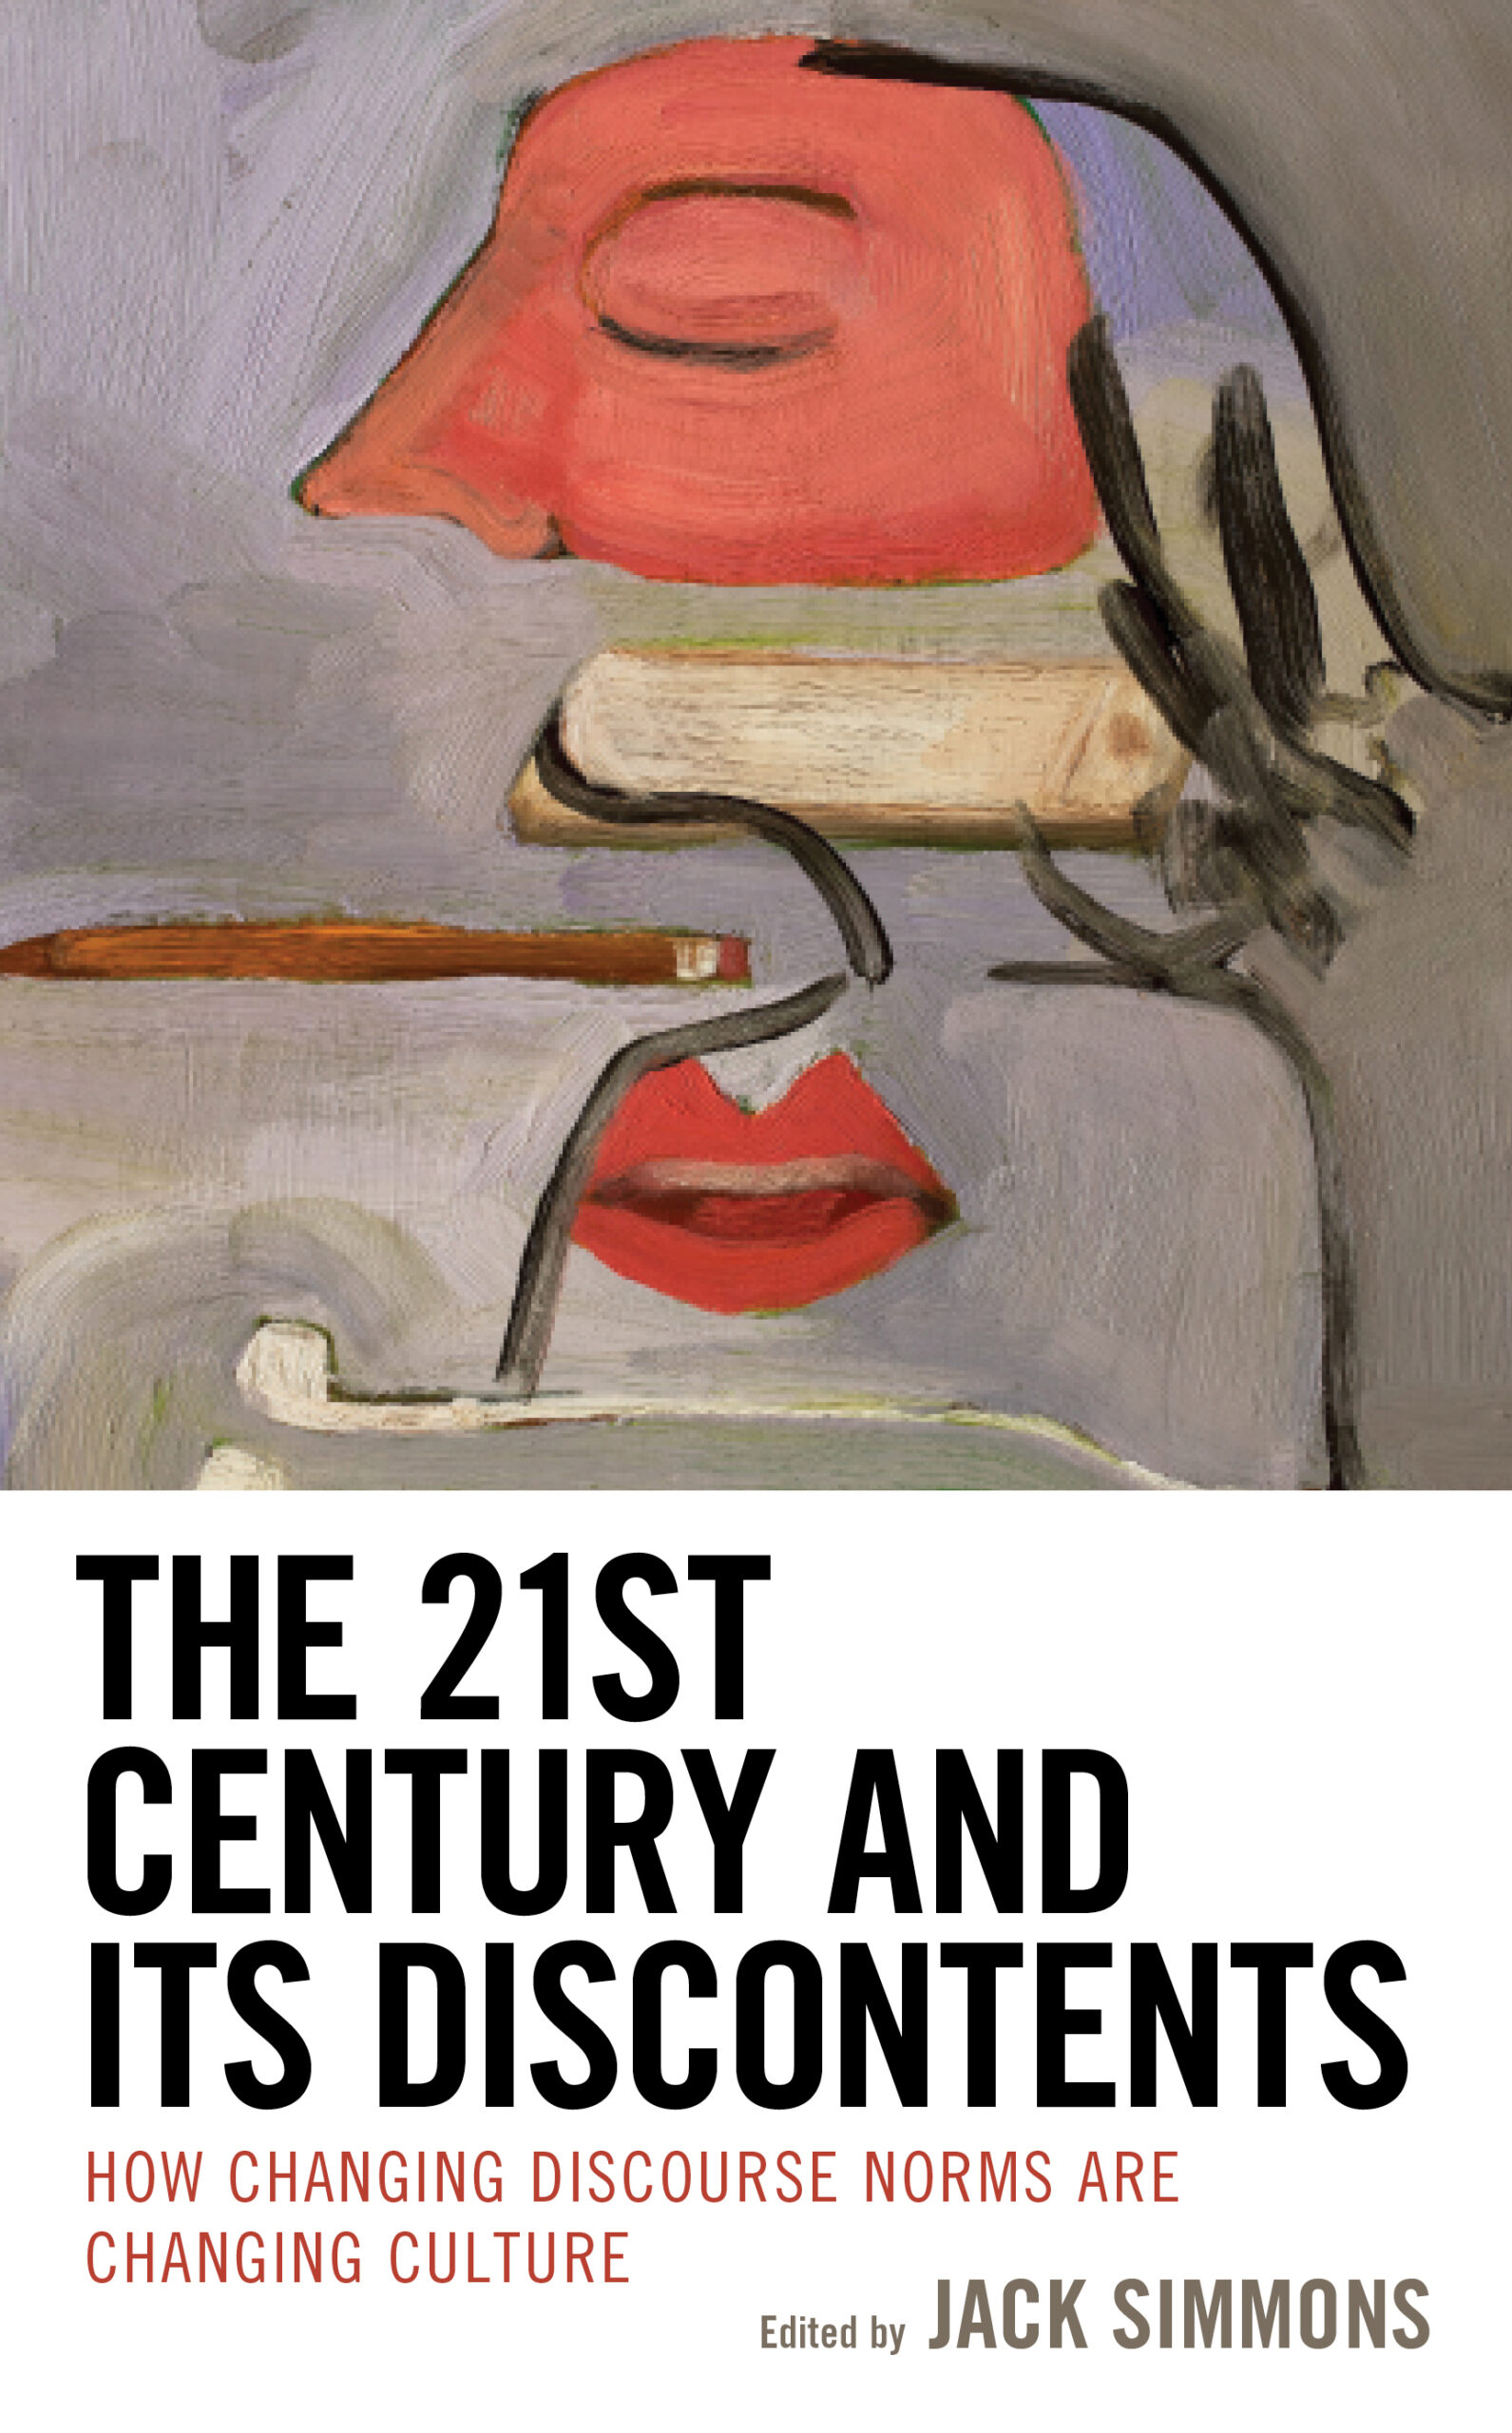 21st Century and Its Discontents, edited by Jack Simmons (in progress)